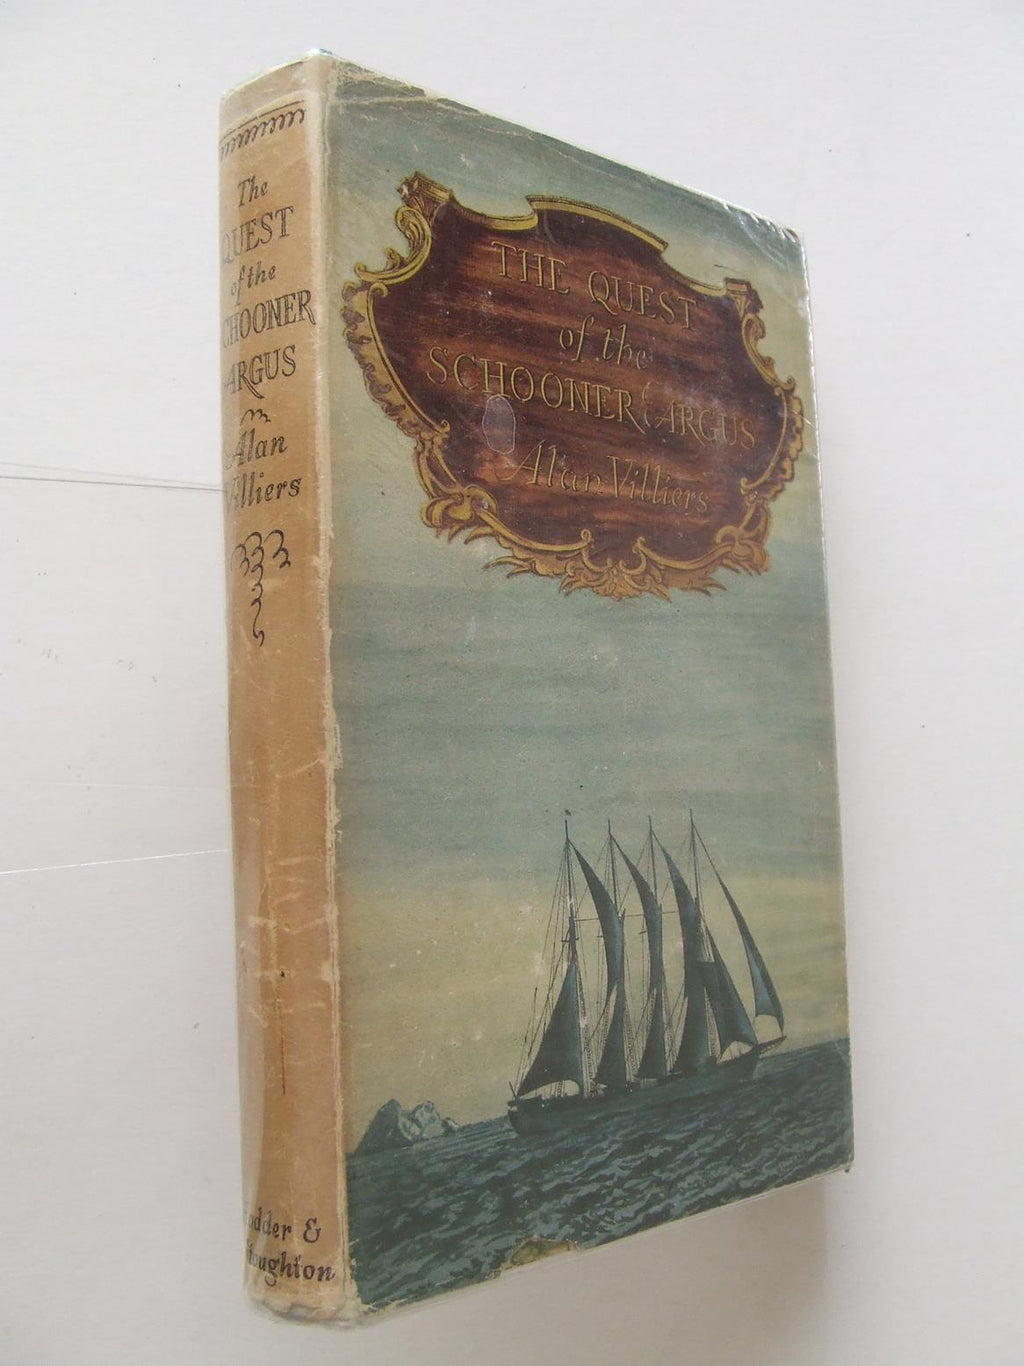 Quest of the Schooner 'Argus', a voyage to the Banks and Greenland